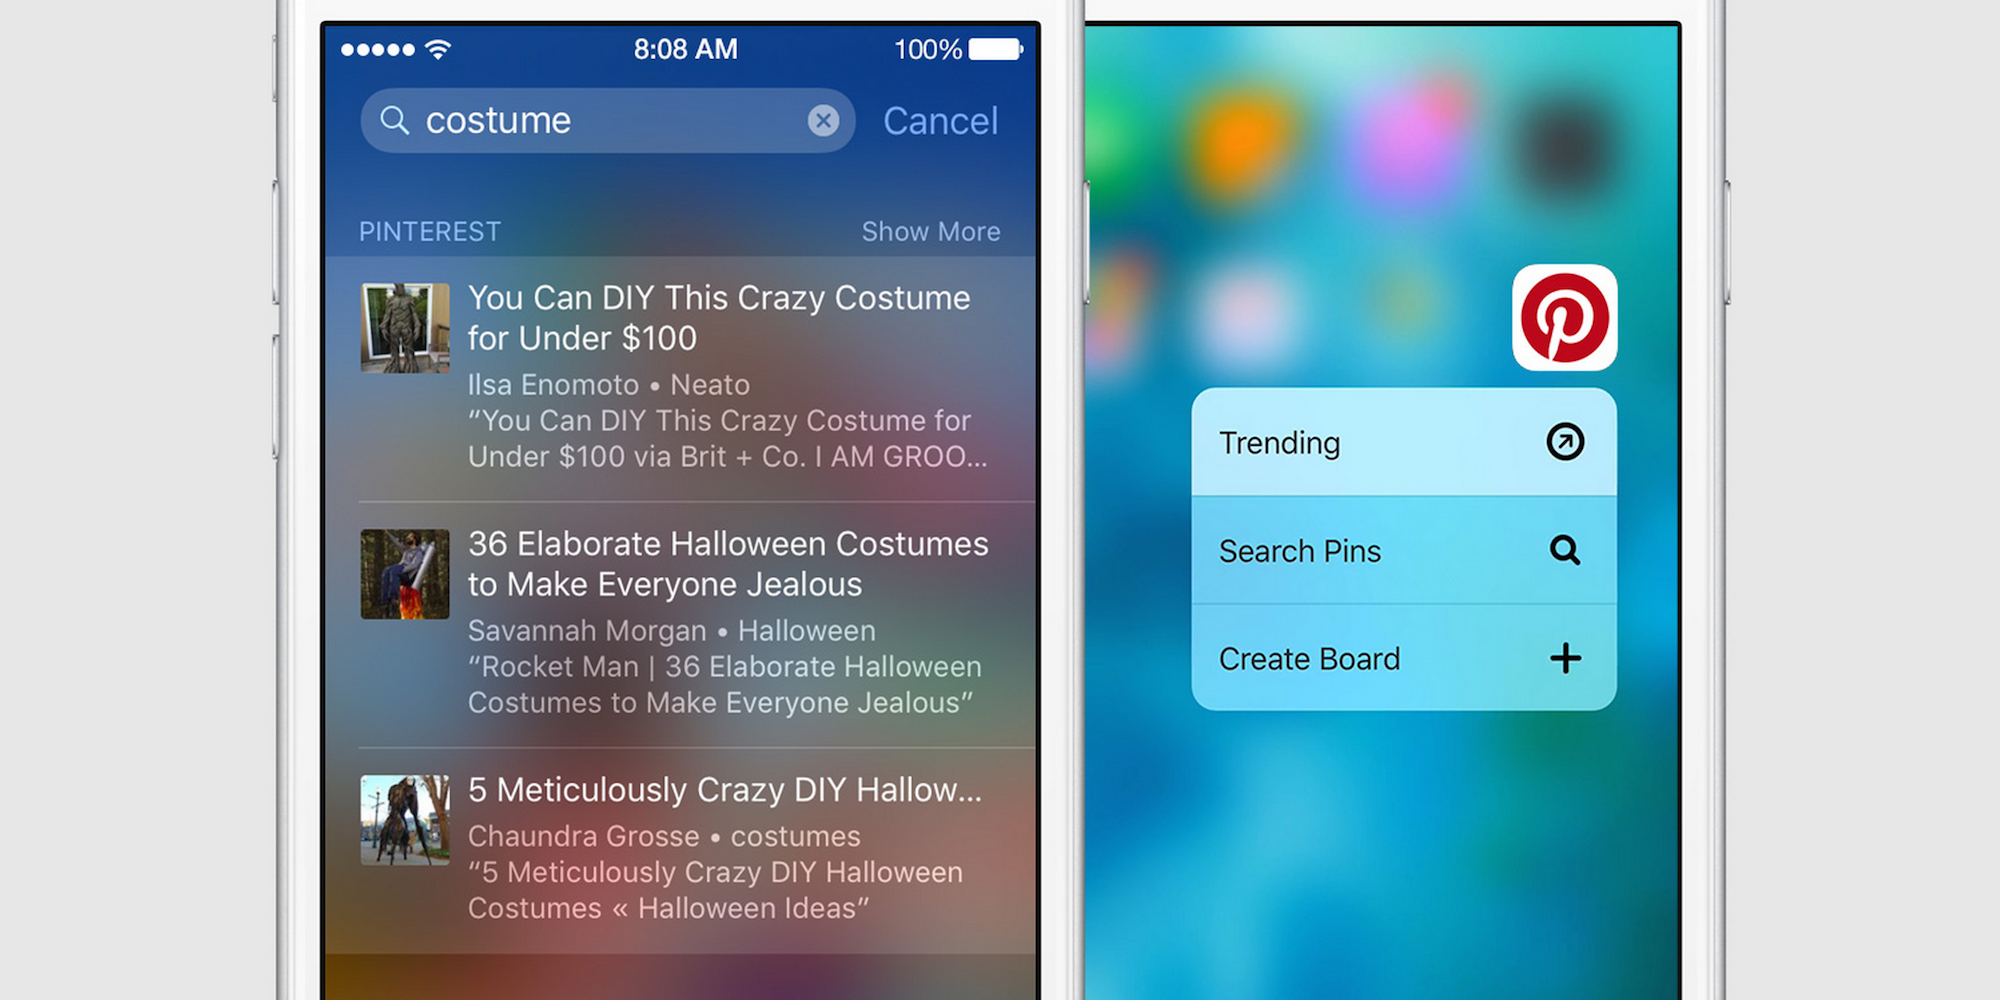 Pinterest Updated For Ios 9 W Spotlight Search 3d Touch On Iphone 6s More 9to5mac